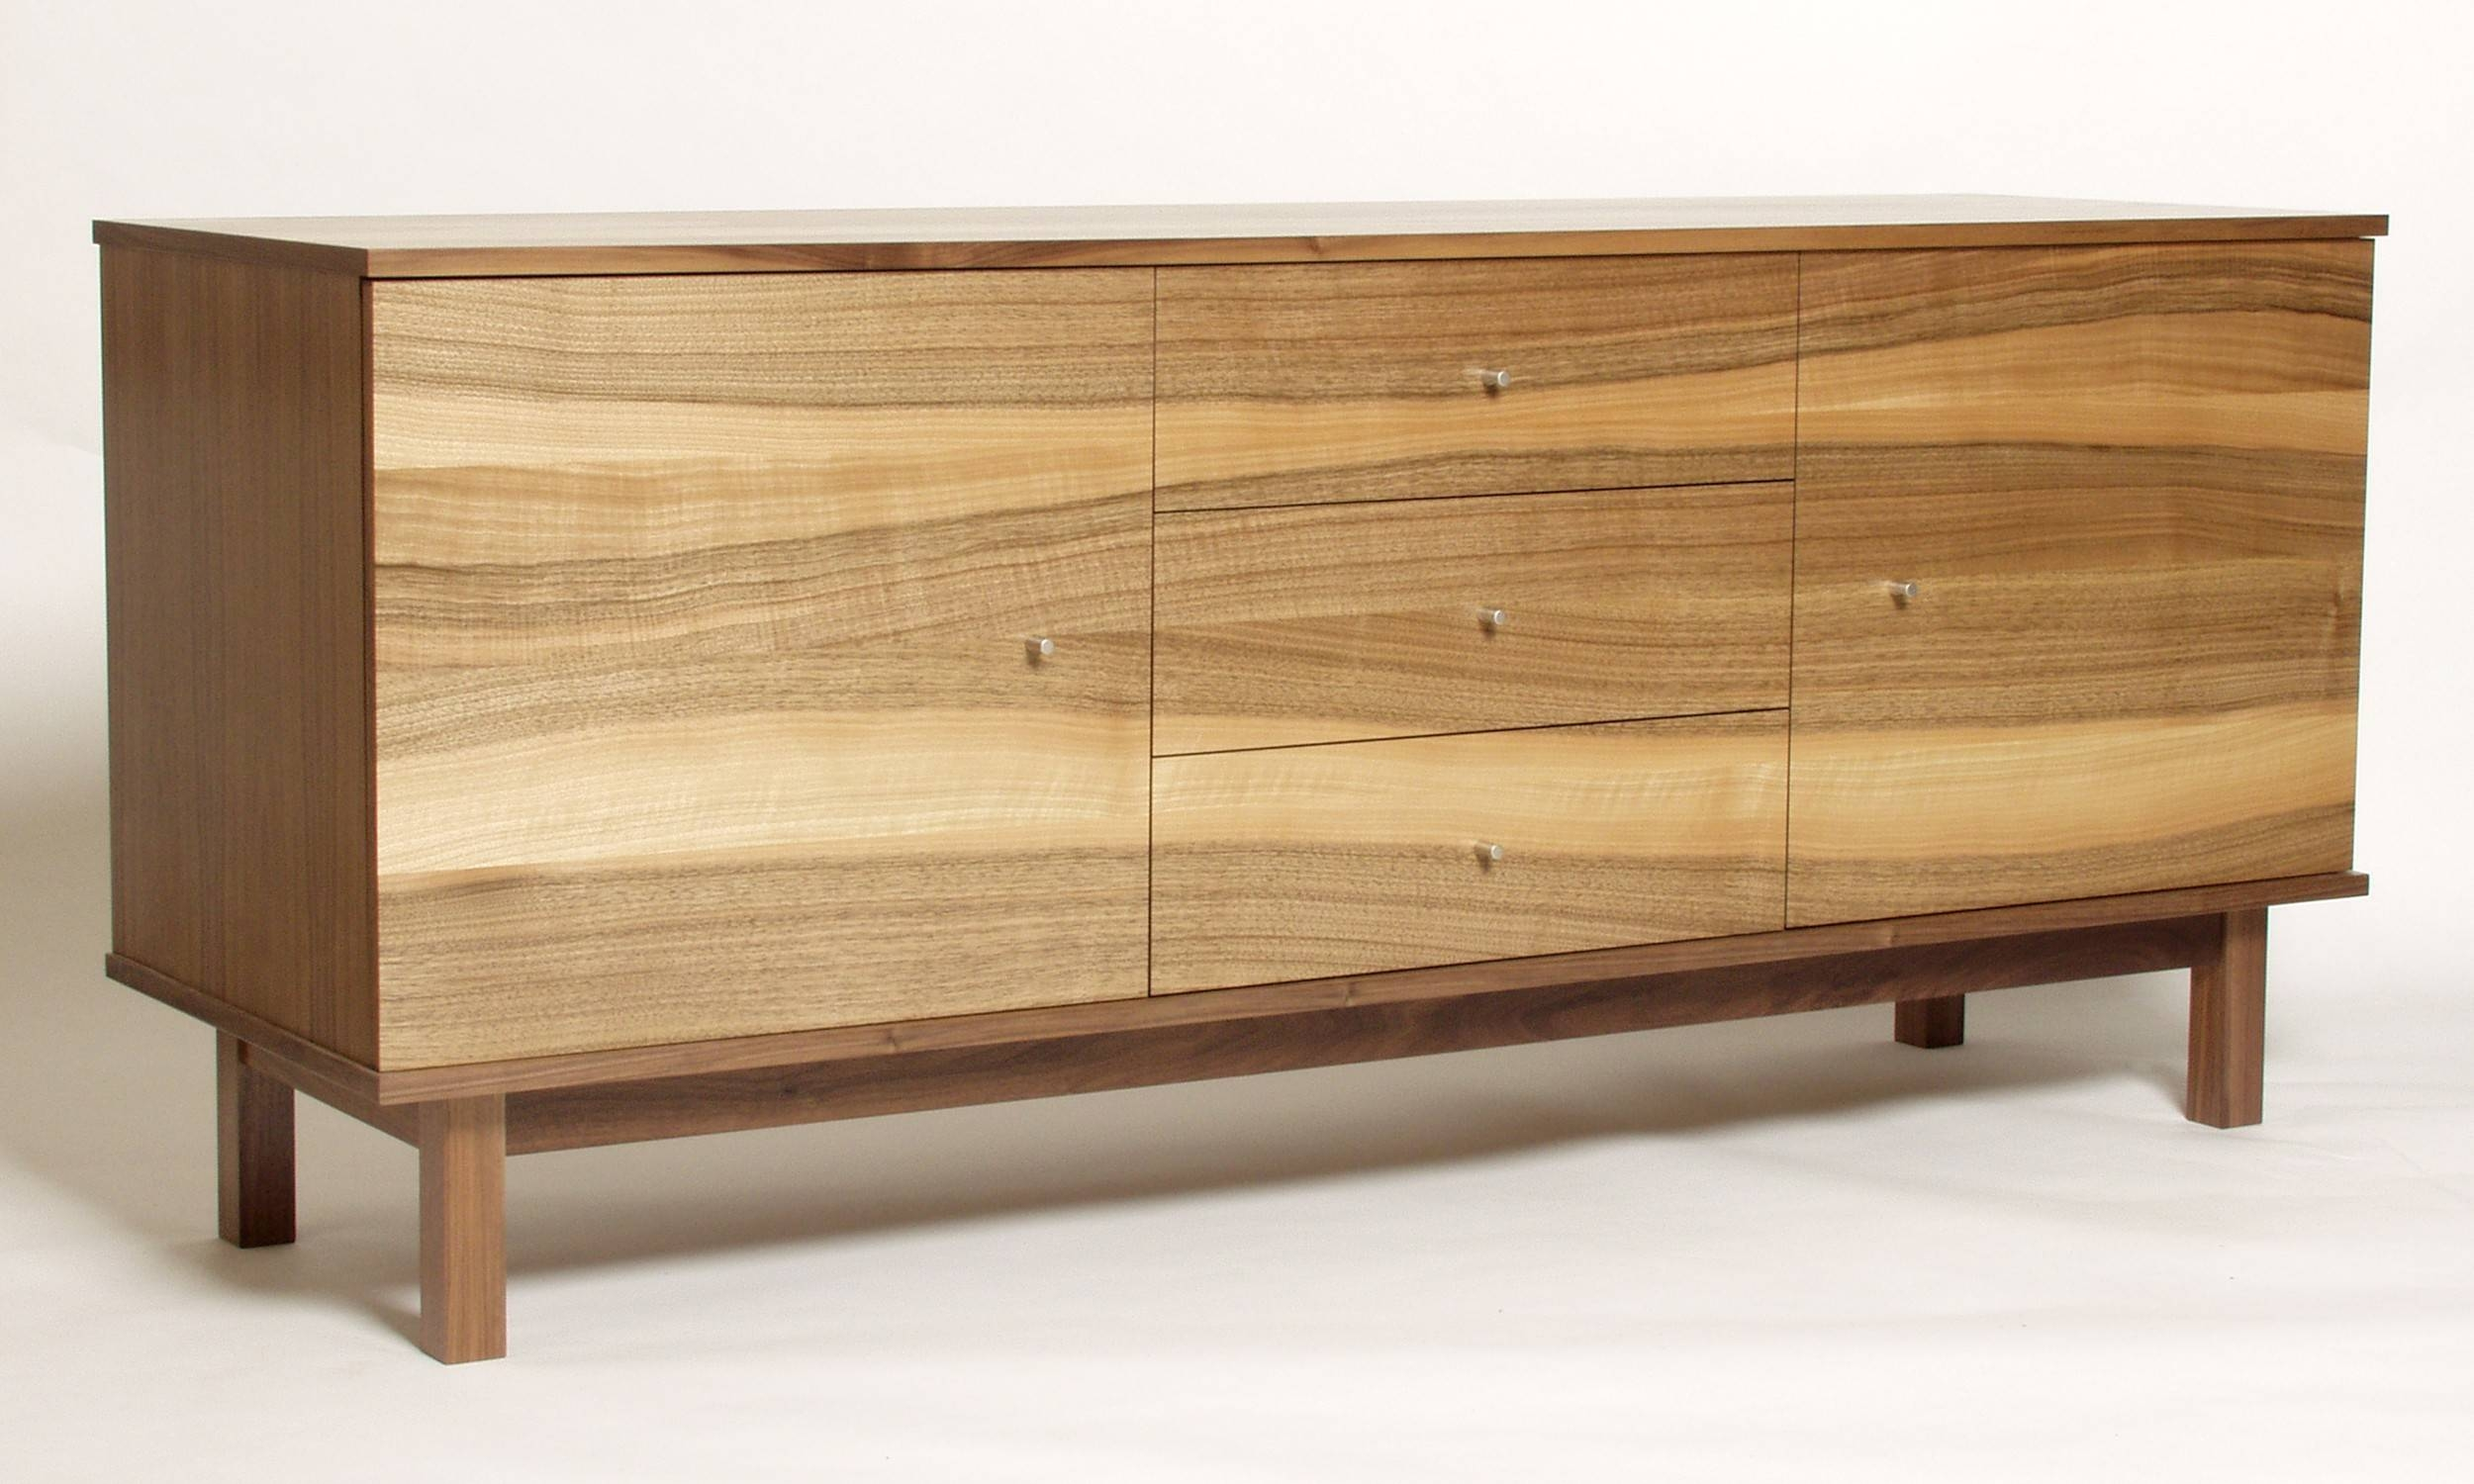 Contemporary And Bespoke Furniture Design – Sable & Ox Intended For 2018 Bespoke Sideboards (#5 of 15)